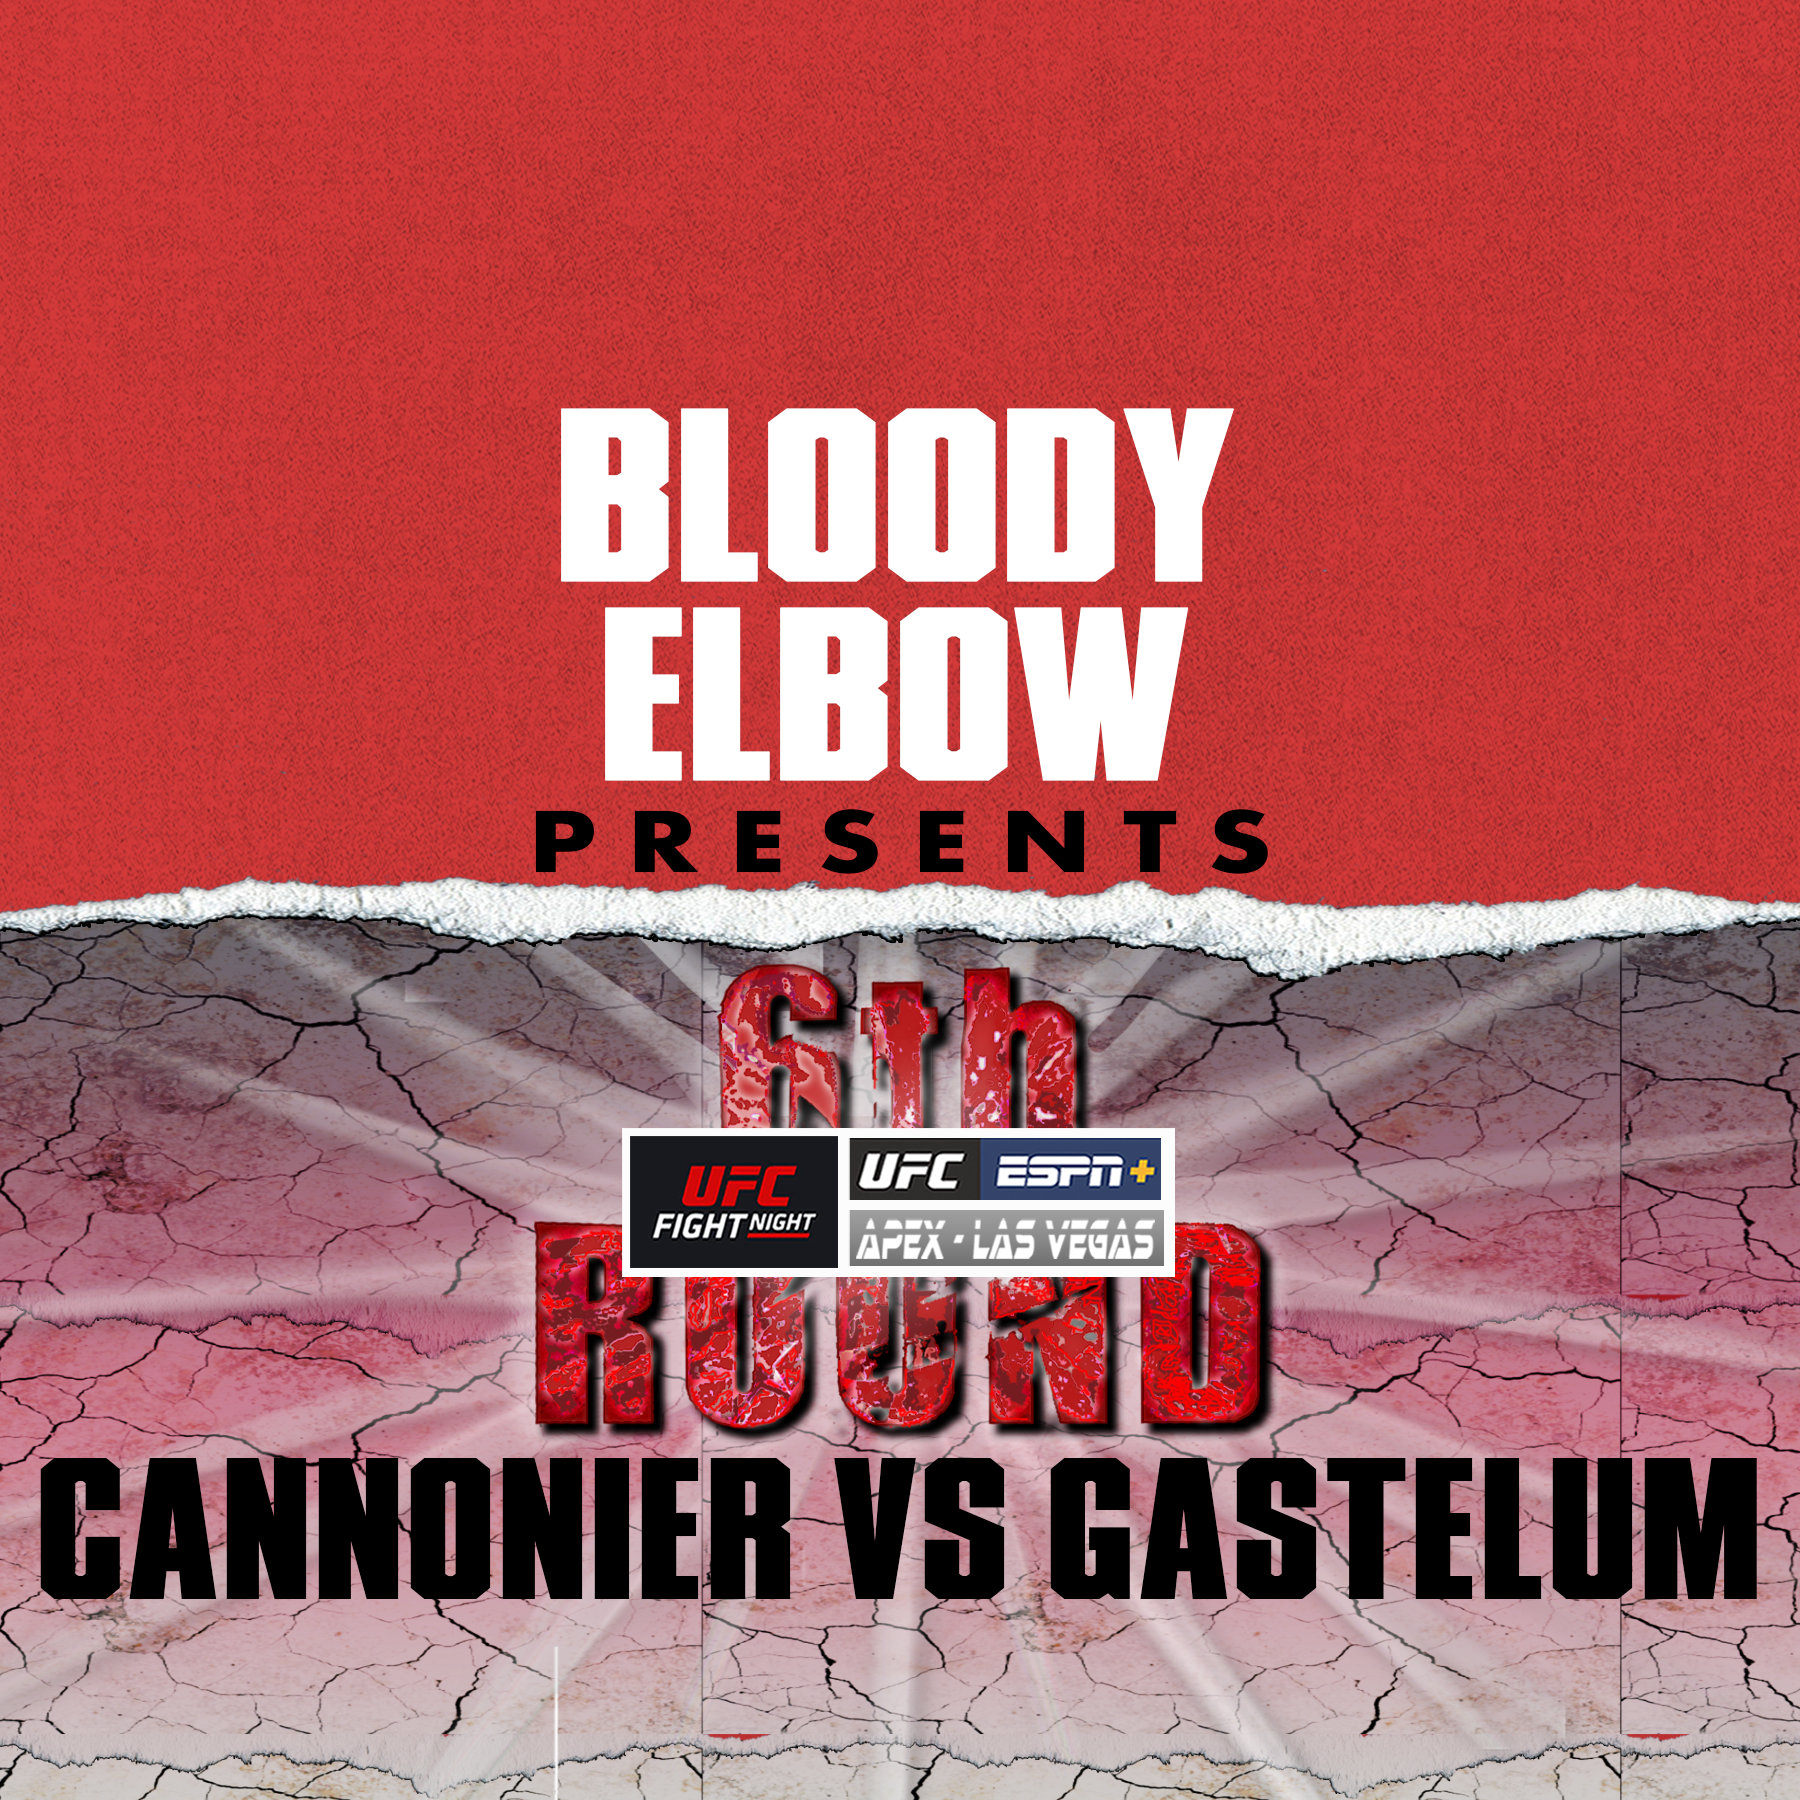 6th Rd, The 6th Round Post-Fight Show, UFC Post-Fight Show, UFC Vegas 34, UFC Podcast, UFC Results, UFC Reactions, Jared Cannonier vs Kelvin Gastelum, Clay Guida vs. Mark O. Madsen, UFC Possible Next Fights, UFC Analysis,